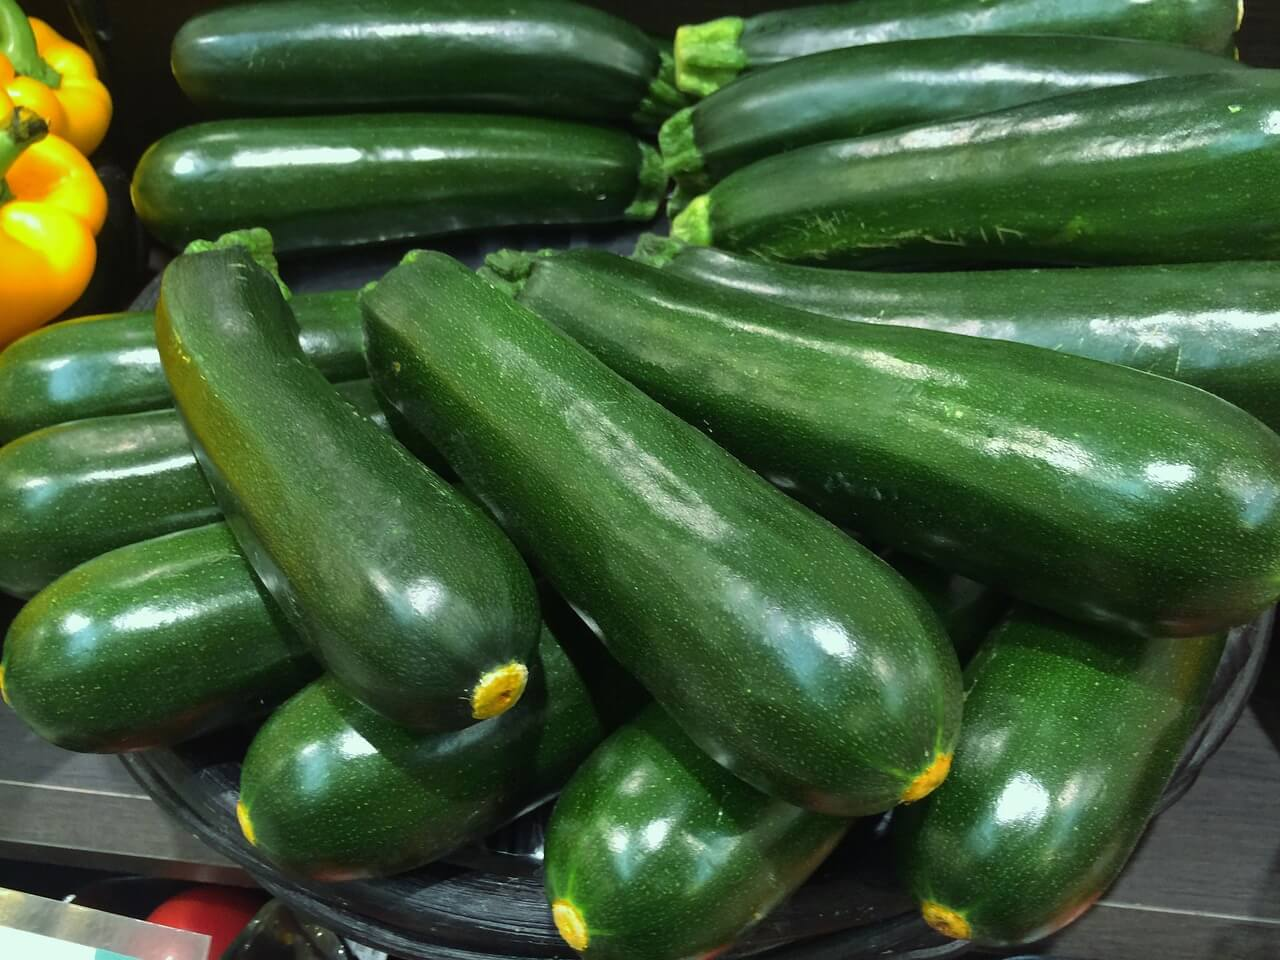 Vegetables to Eat on a Keto Diet: Zucchini